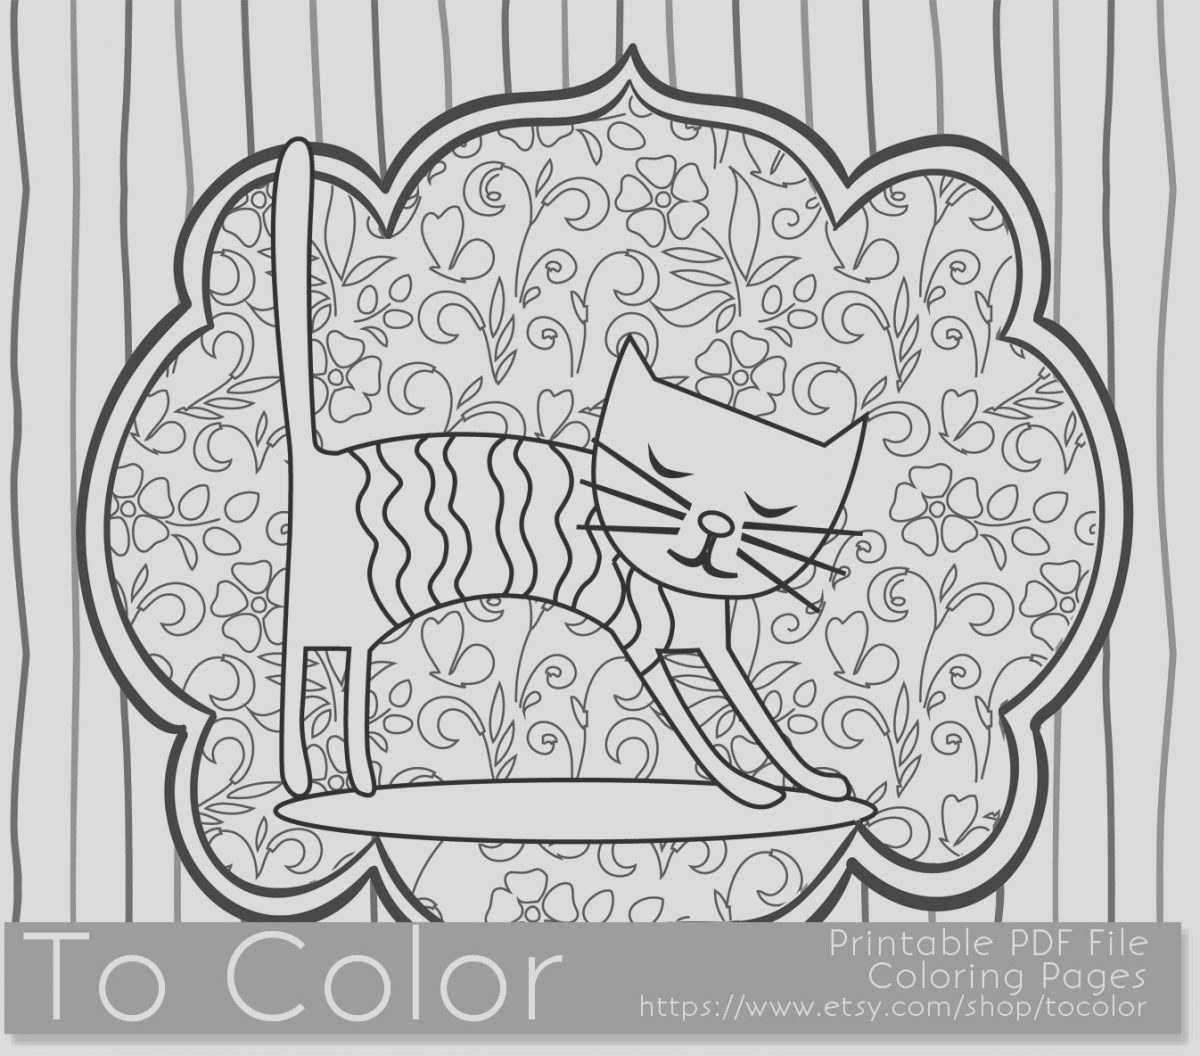 Coloring Book for Adults Cats Elegant Printable Whimsical Cat Coloring Page for Adults Pdf by